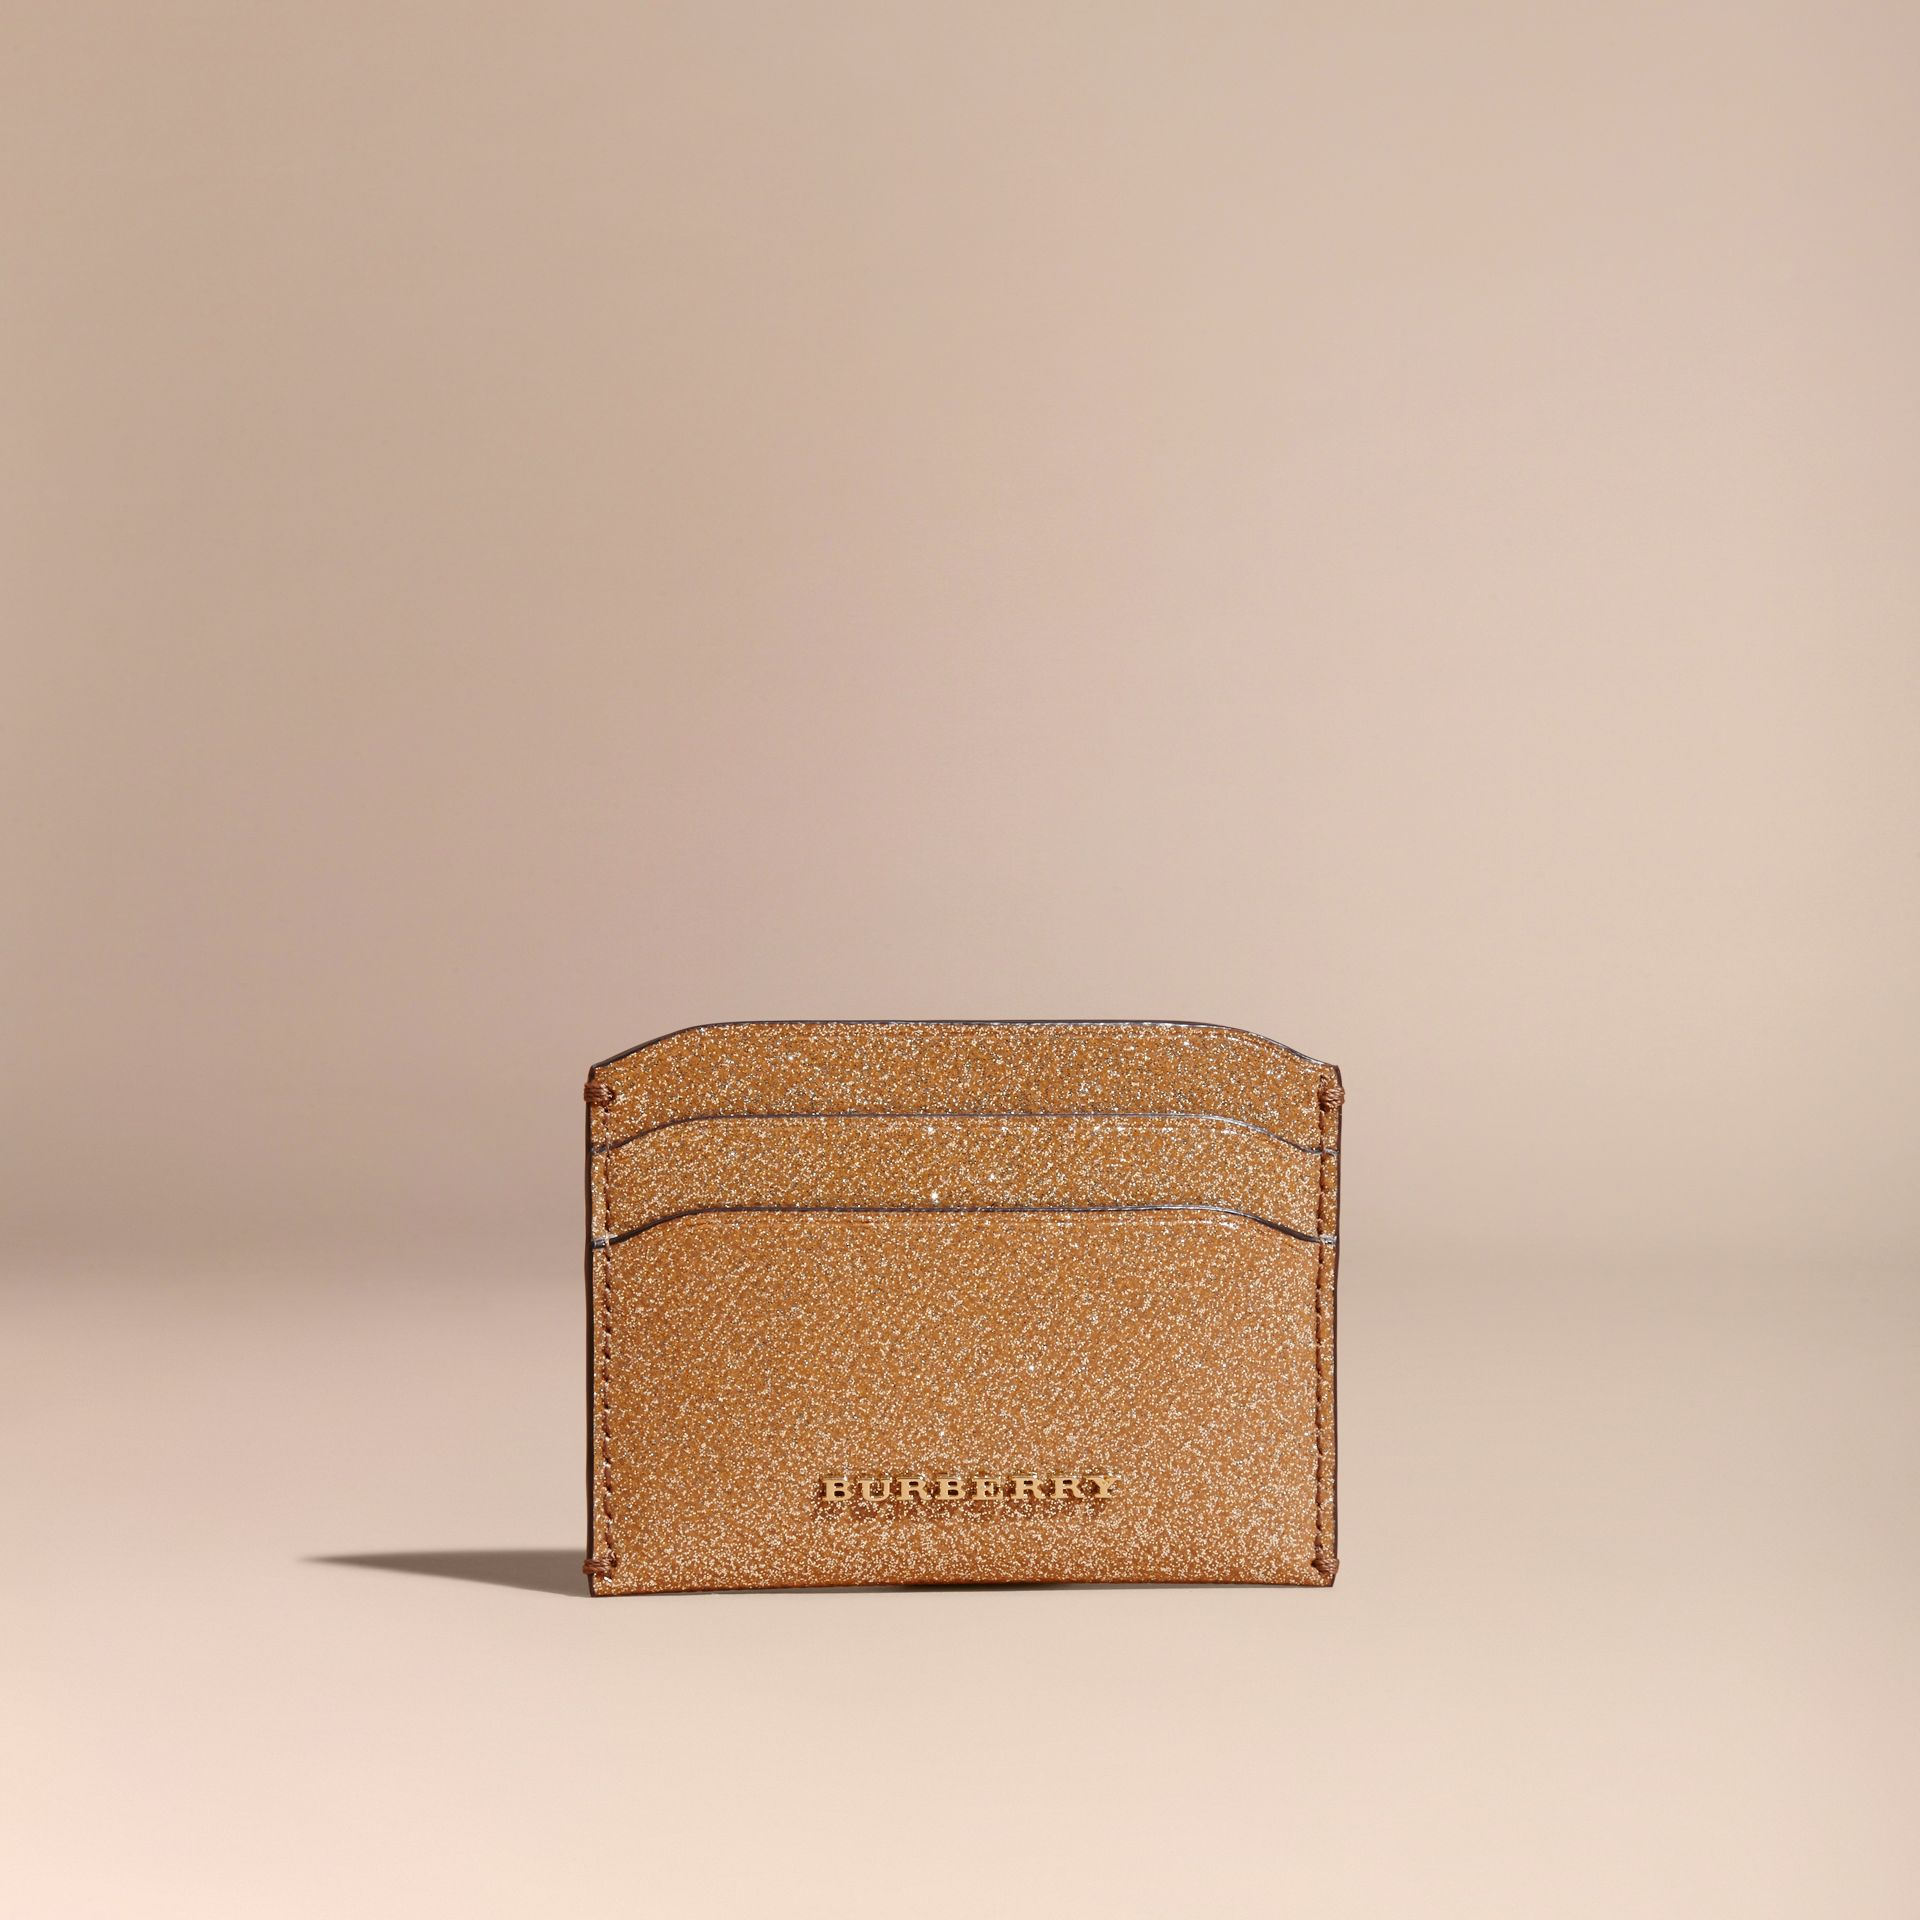 London Leather Glitter Card Case in Camel / Gold - gallery image 6